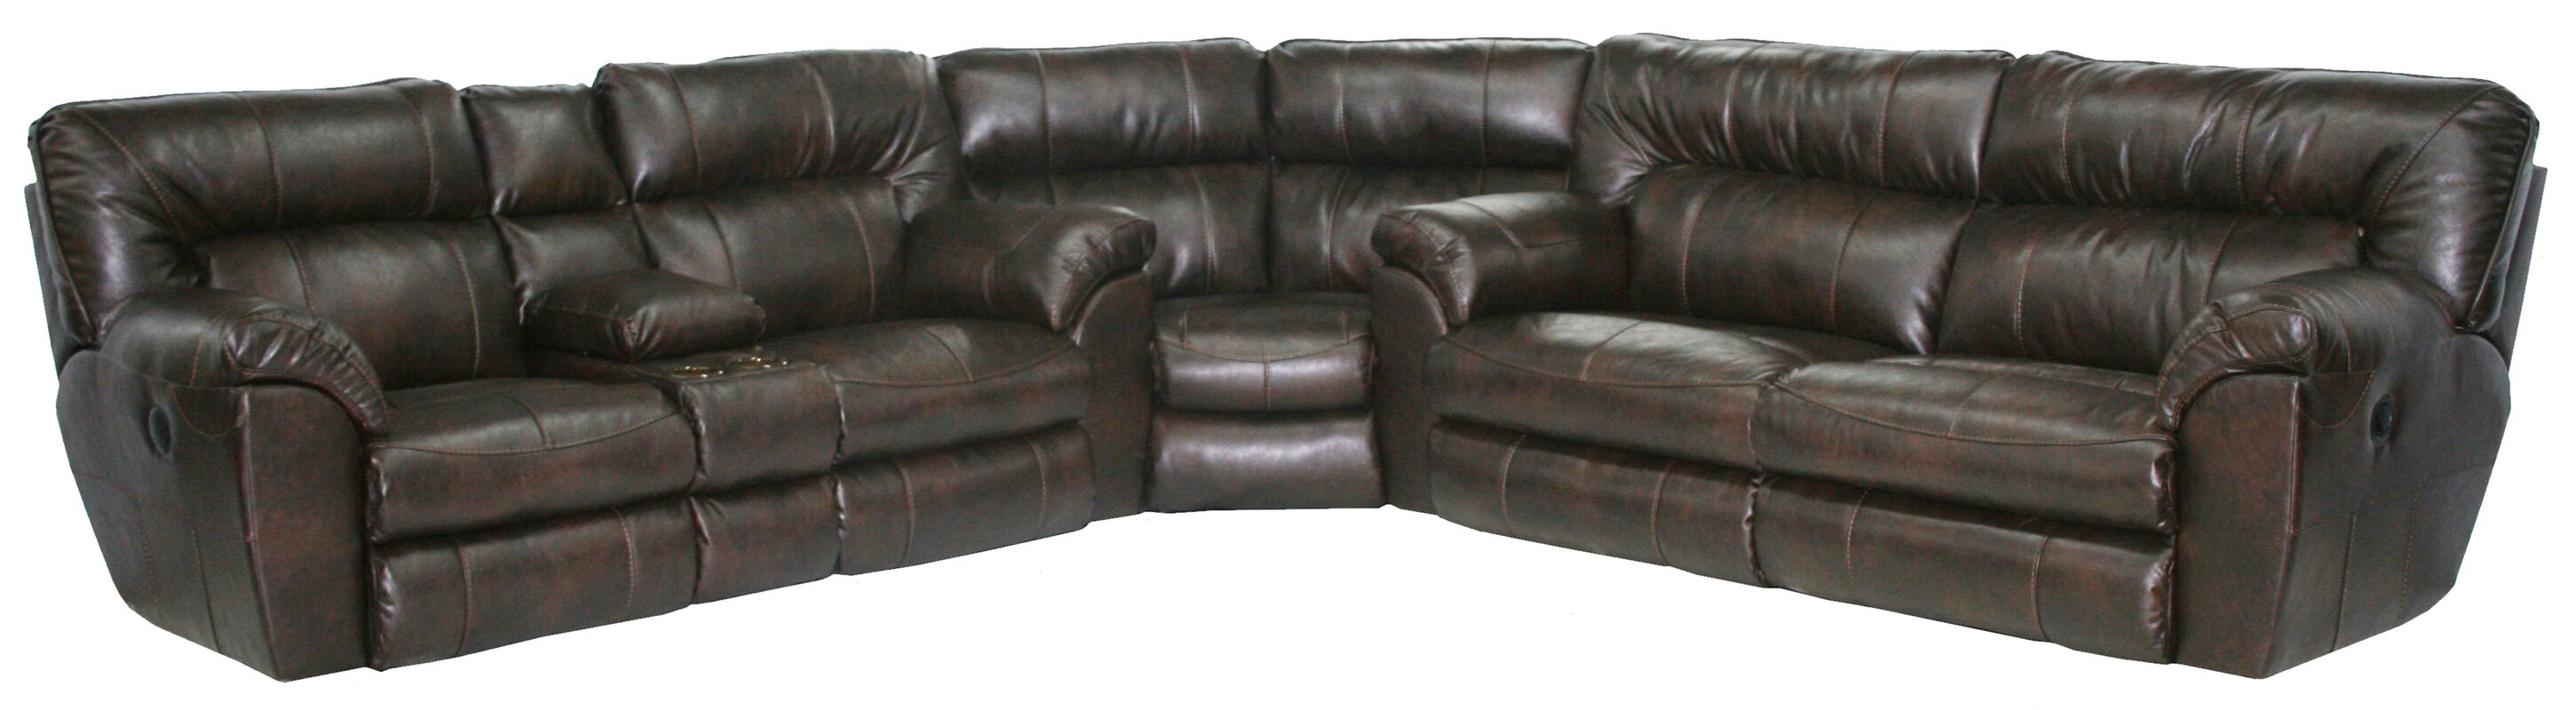 dinning sofa sam wide reclining nice club fascinating recliner sams extra s double